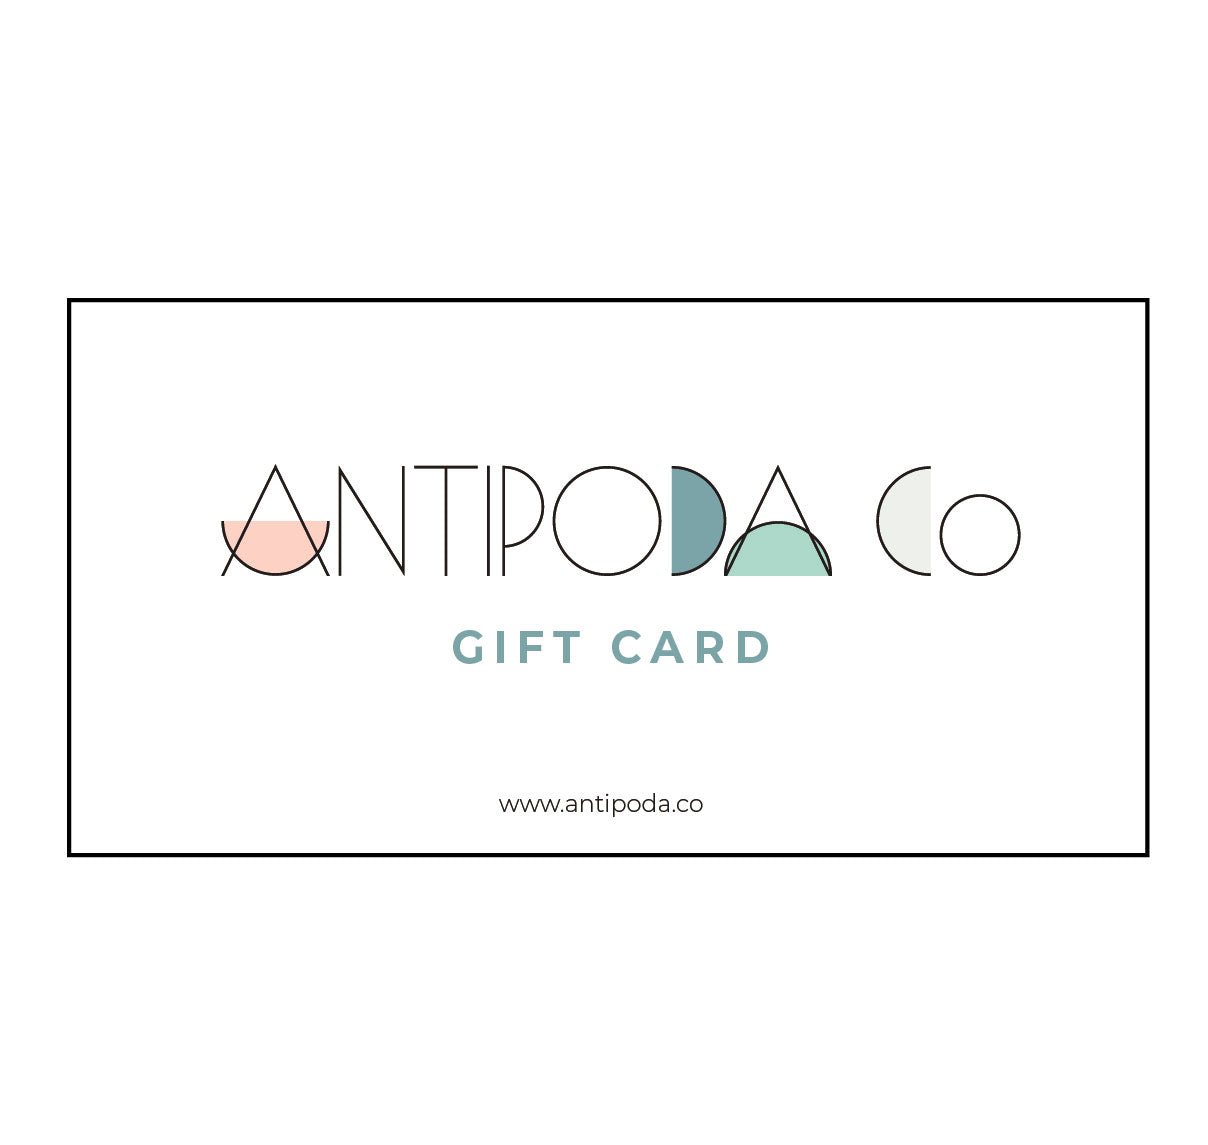 Antipoda Co Gift Card